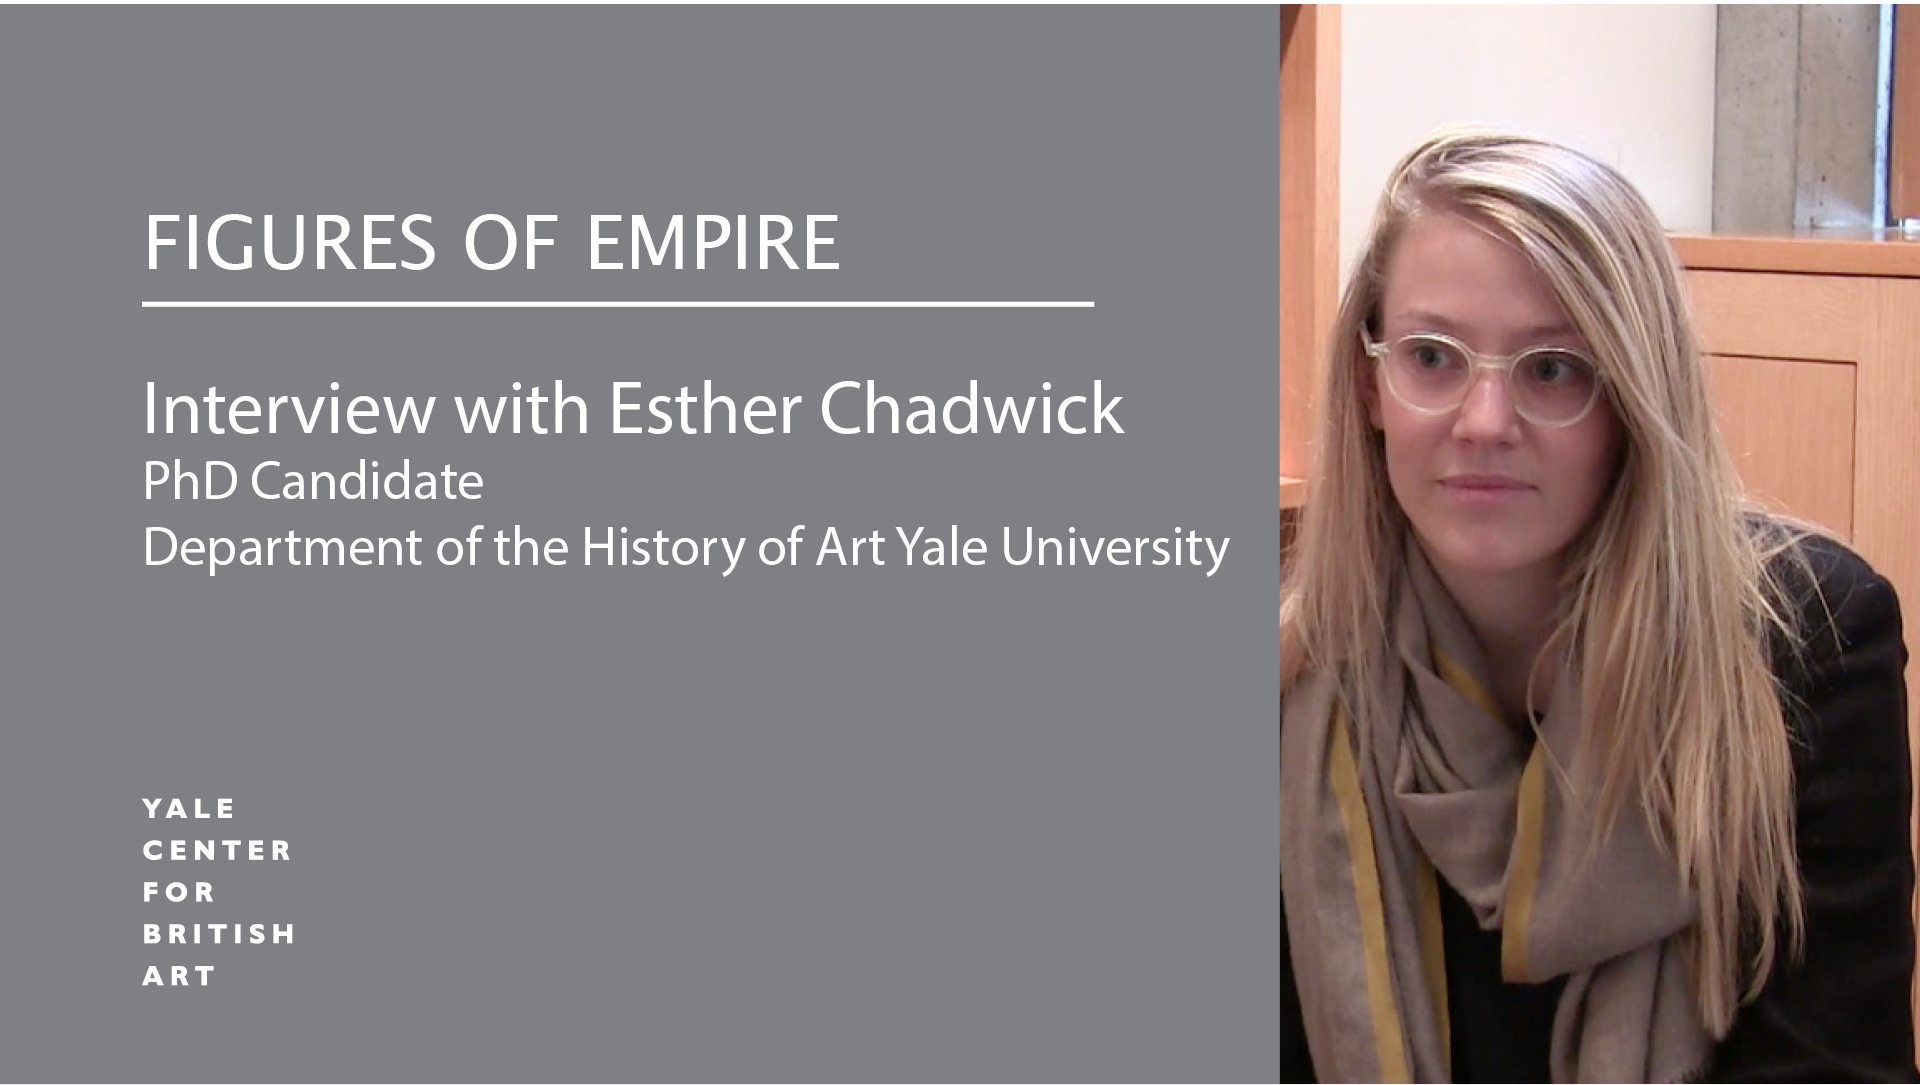 Esther Chadwick, co-curator for Figures of Empire